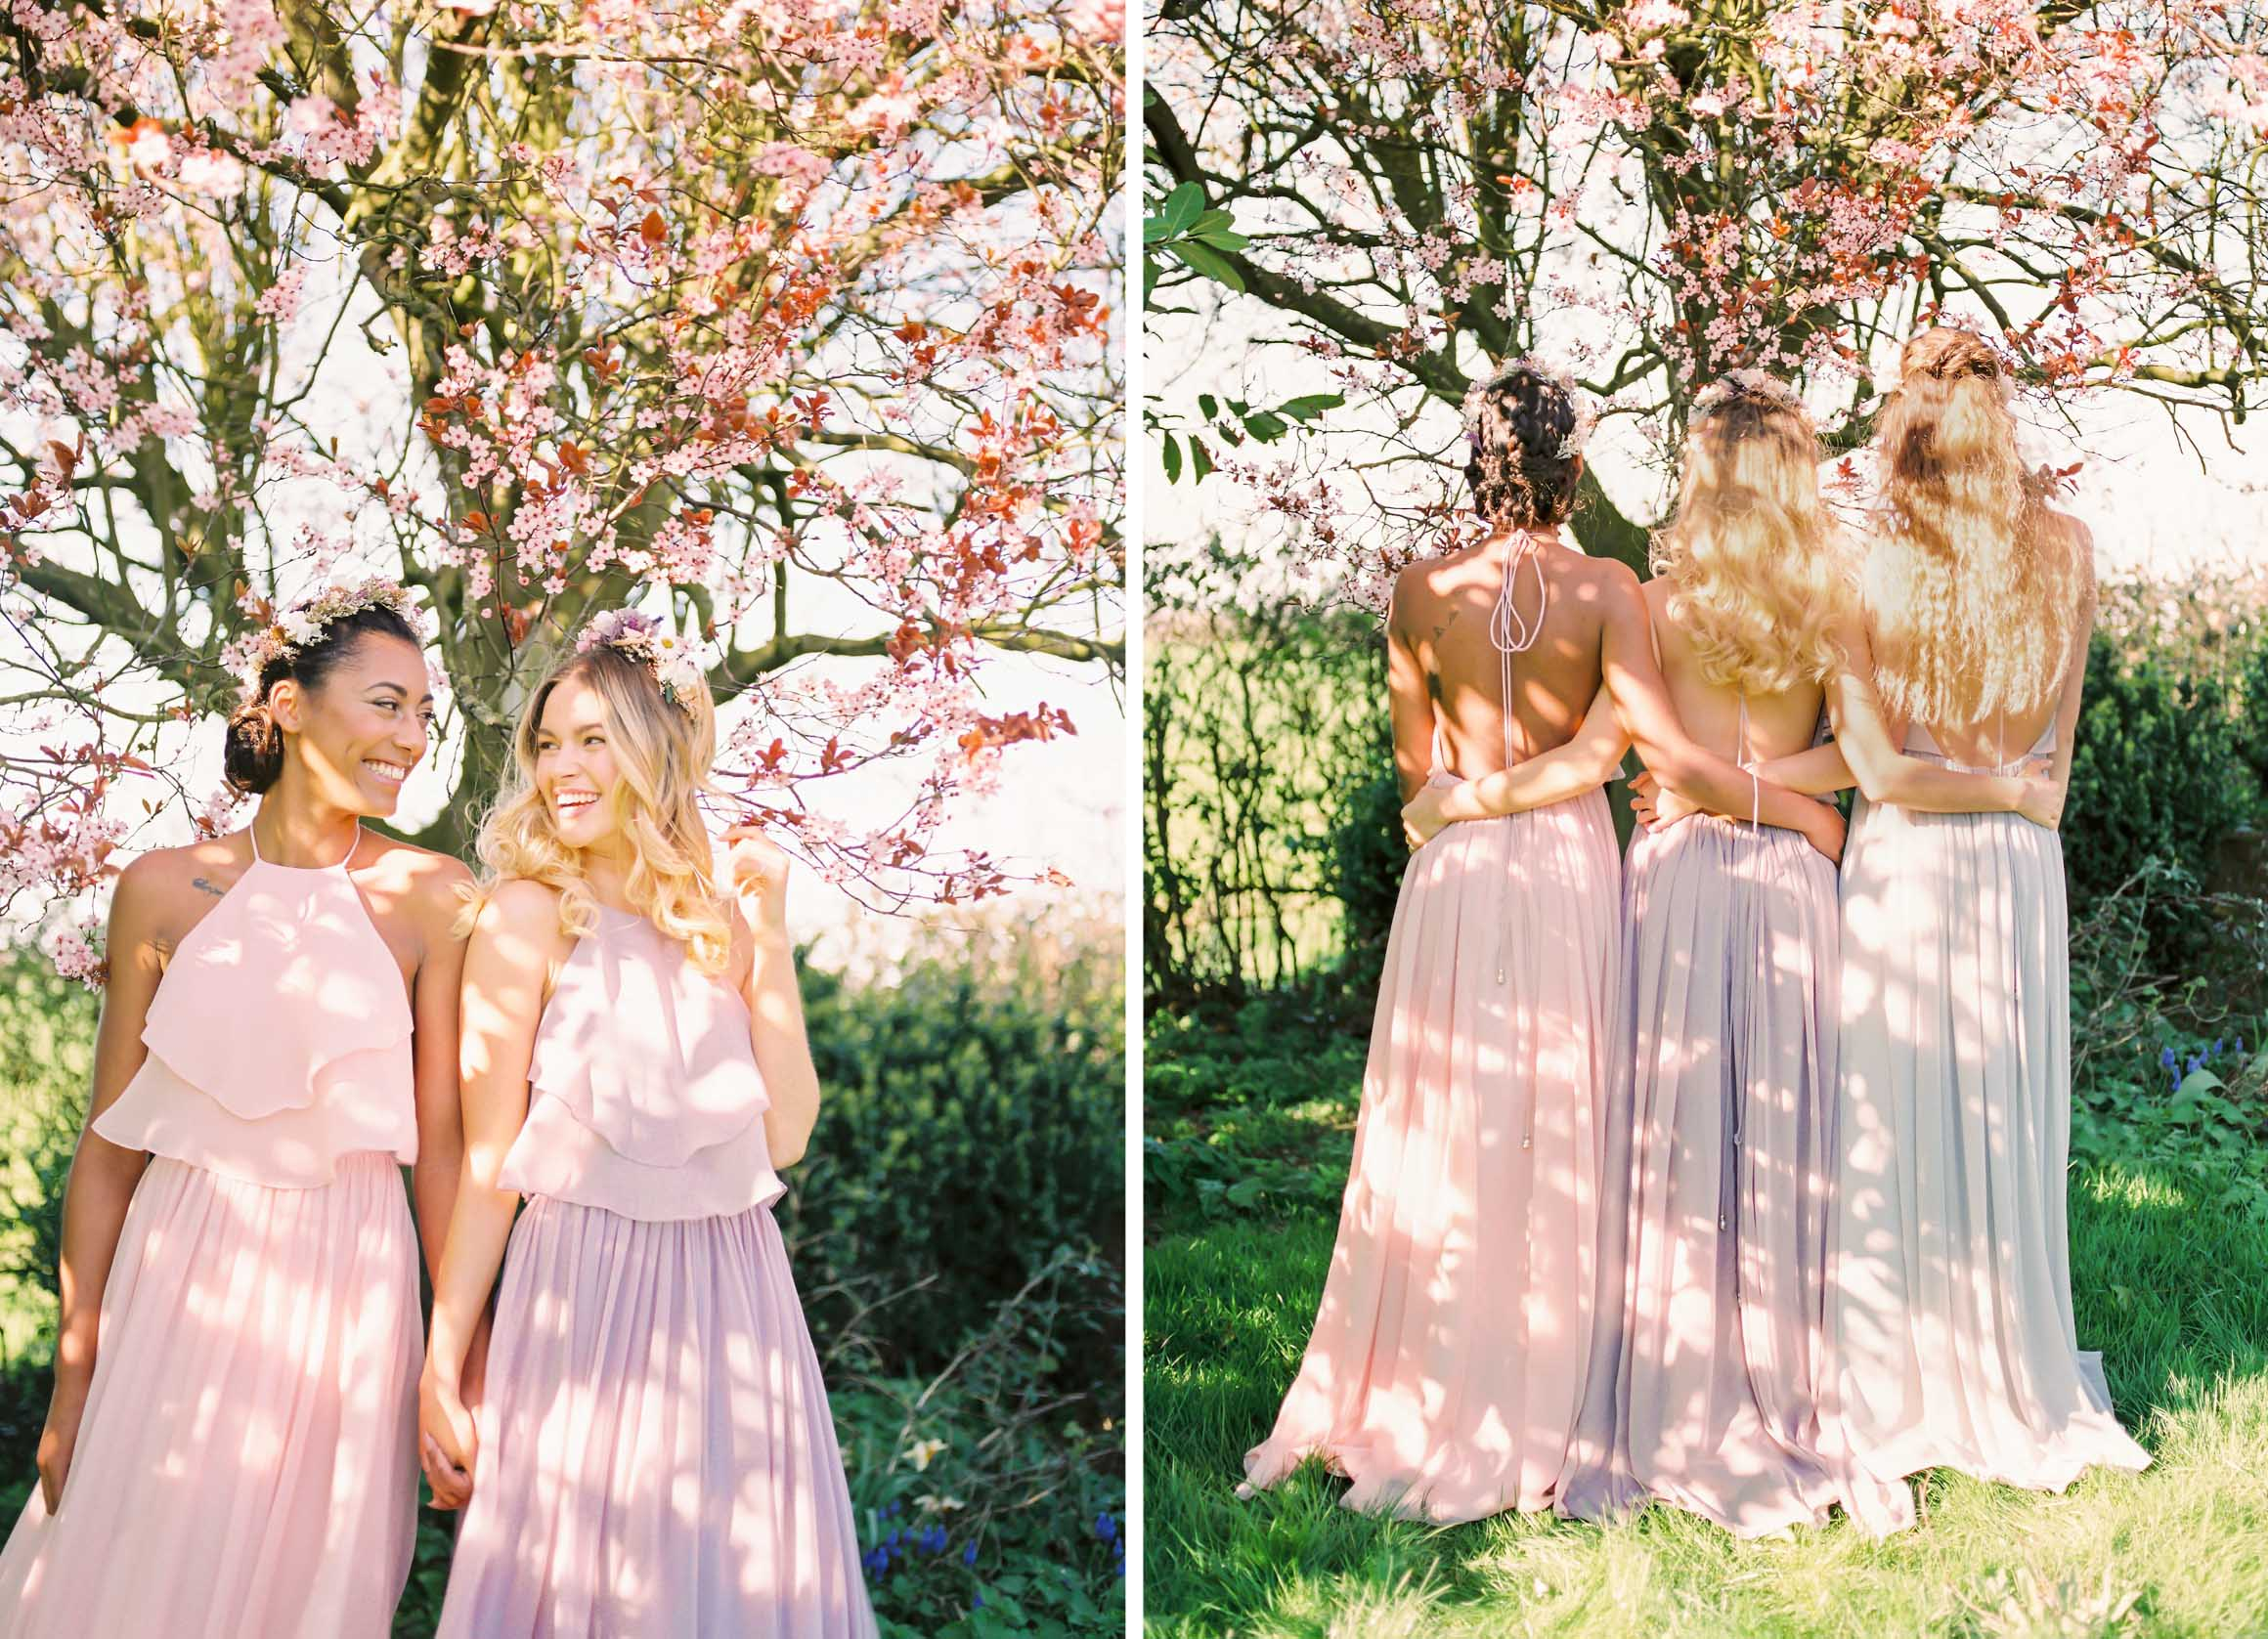 Amy O'Boyle Photography- Destination & UK Fine Art Film Wedding Photographer- TH&TH Bridesmaid Dress Shoot 5.jpg